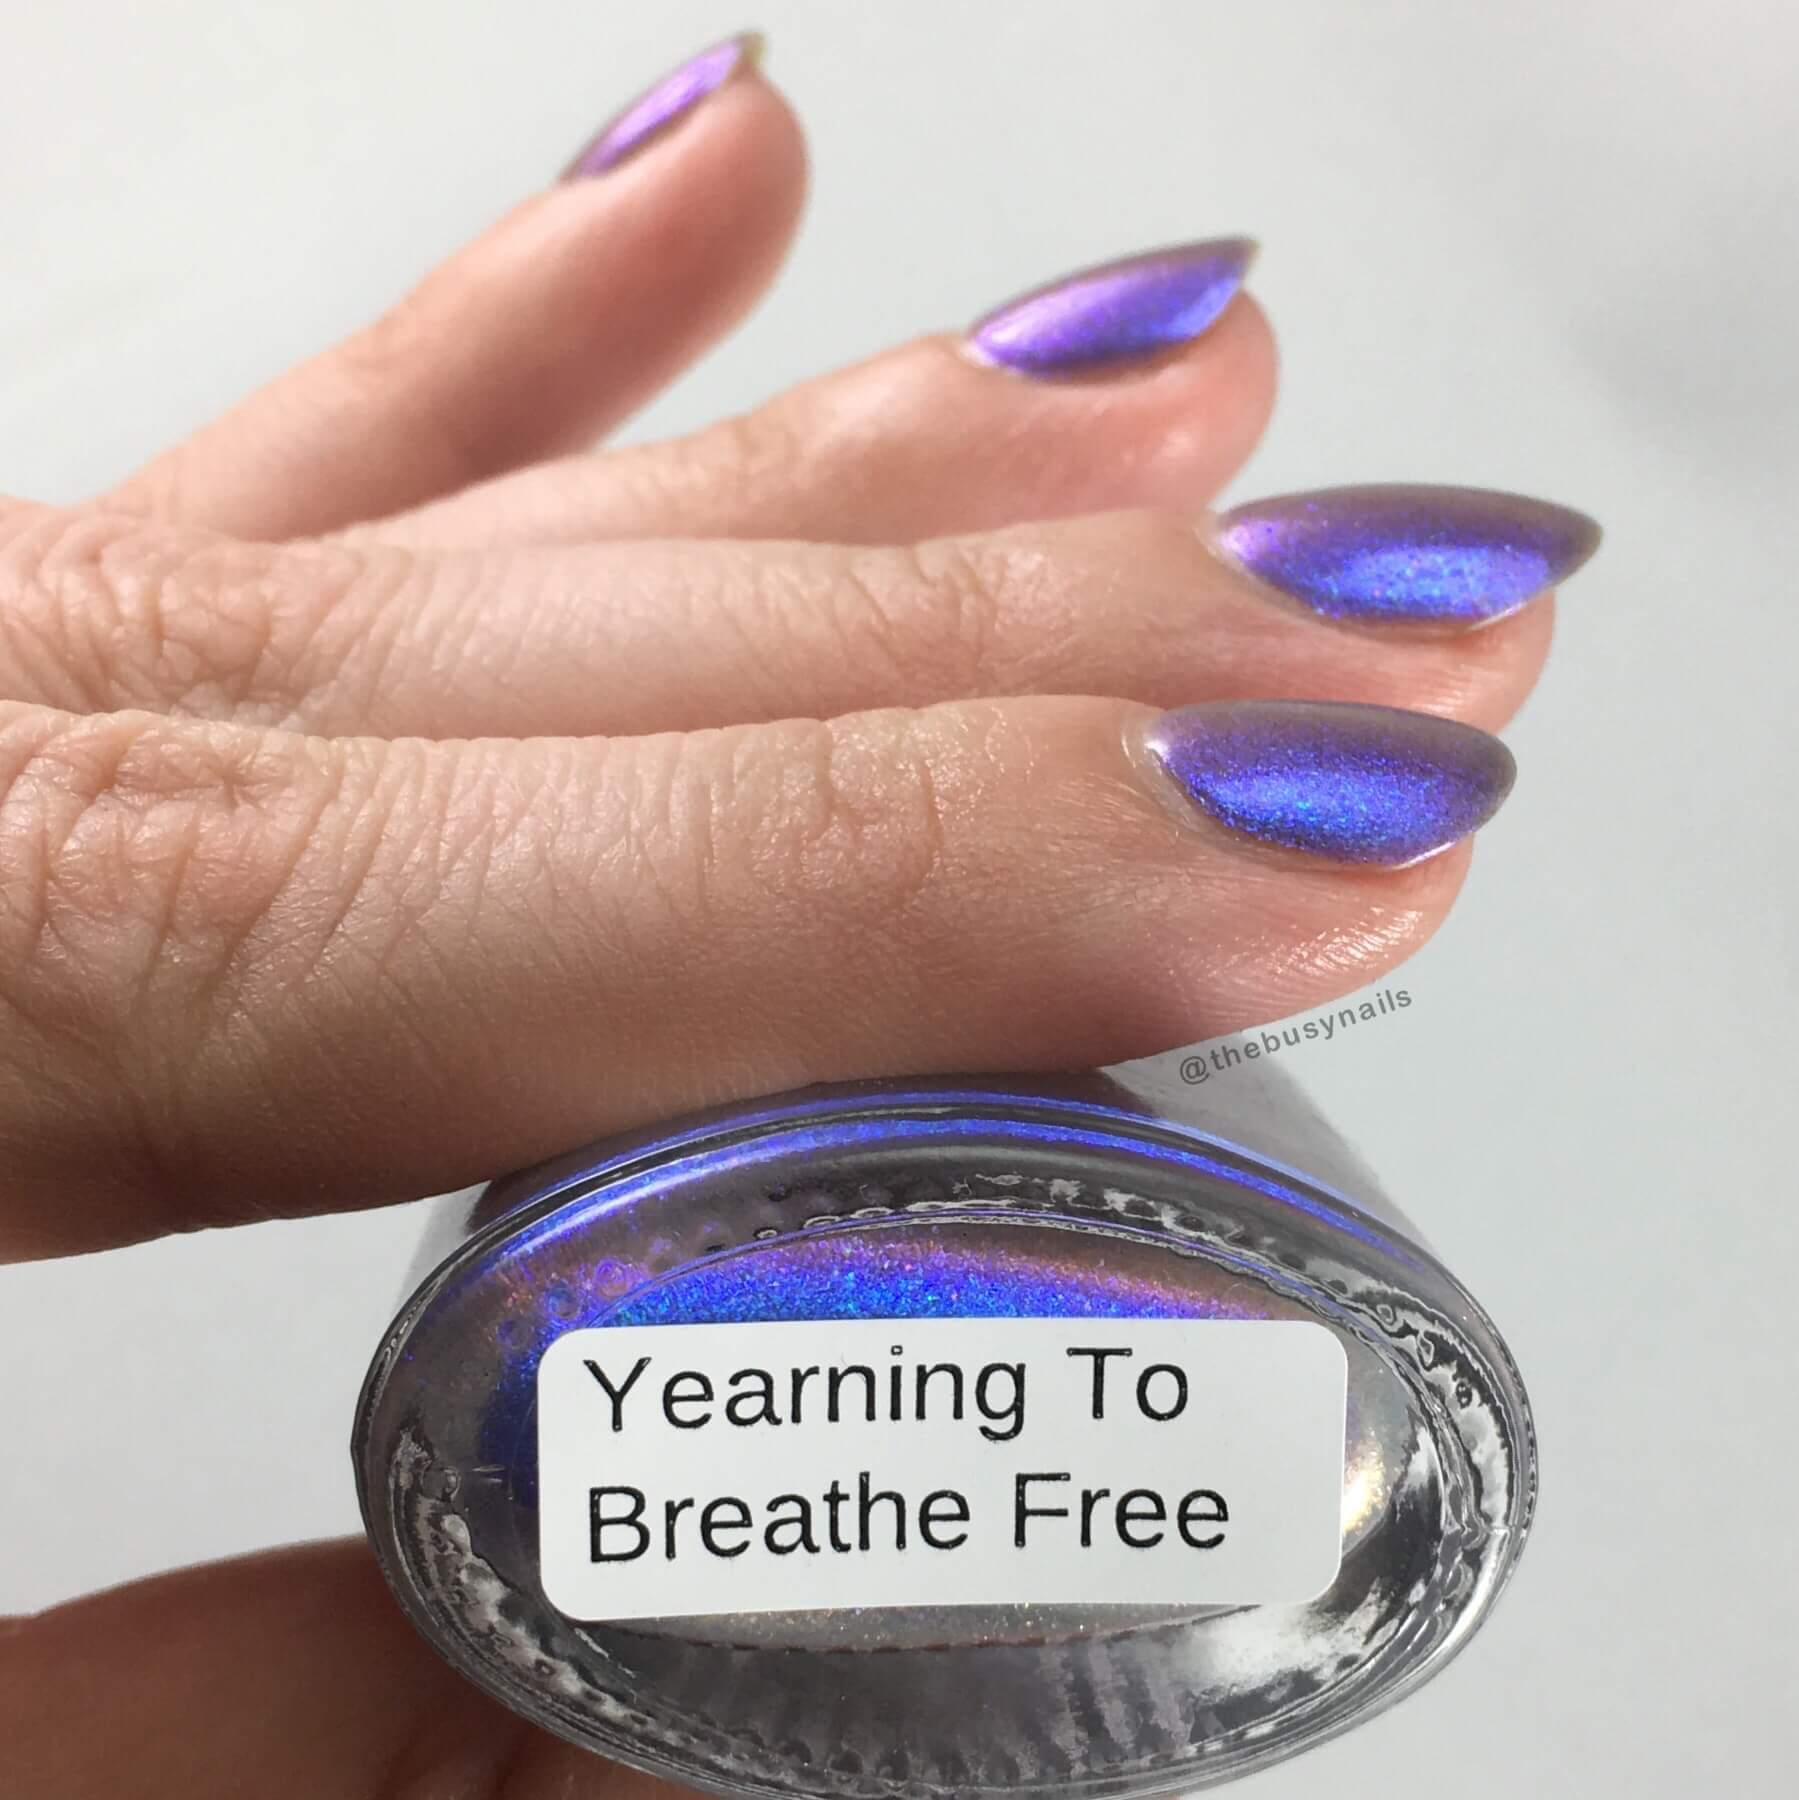 yearning-label.jpg